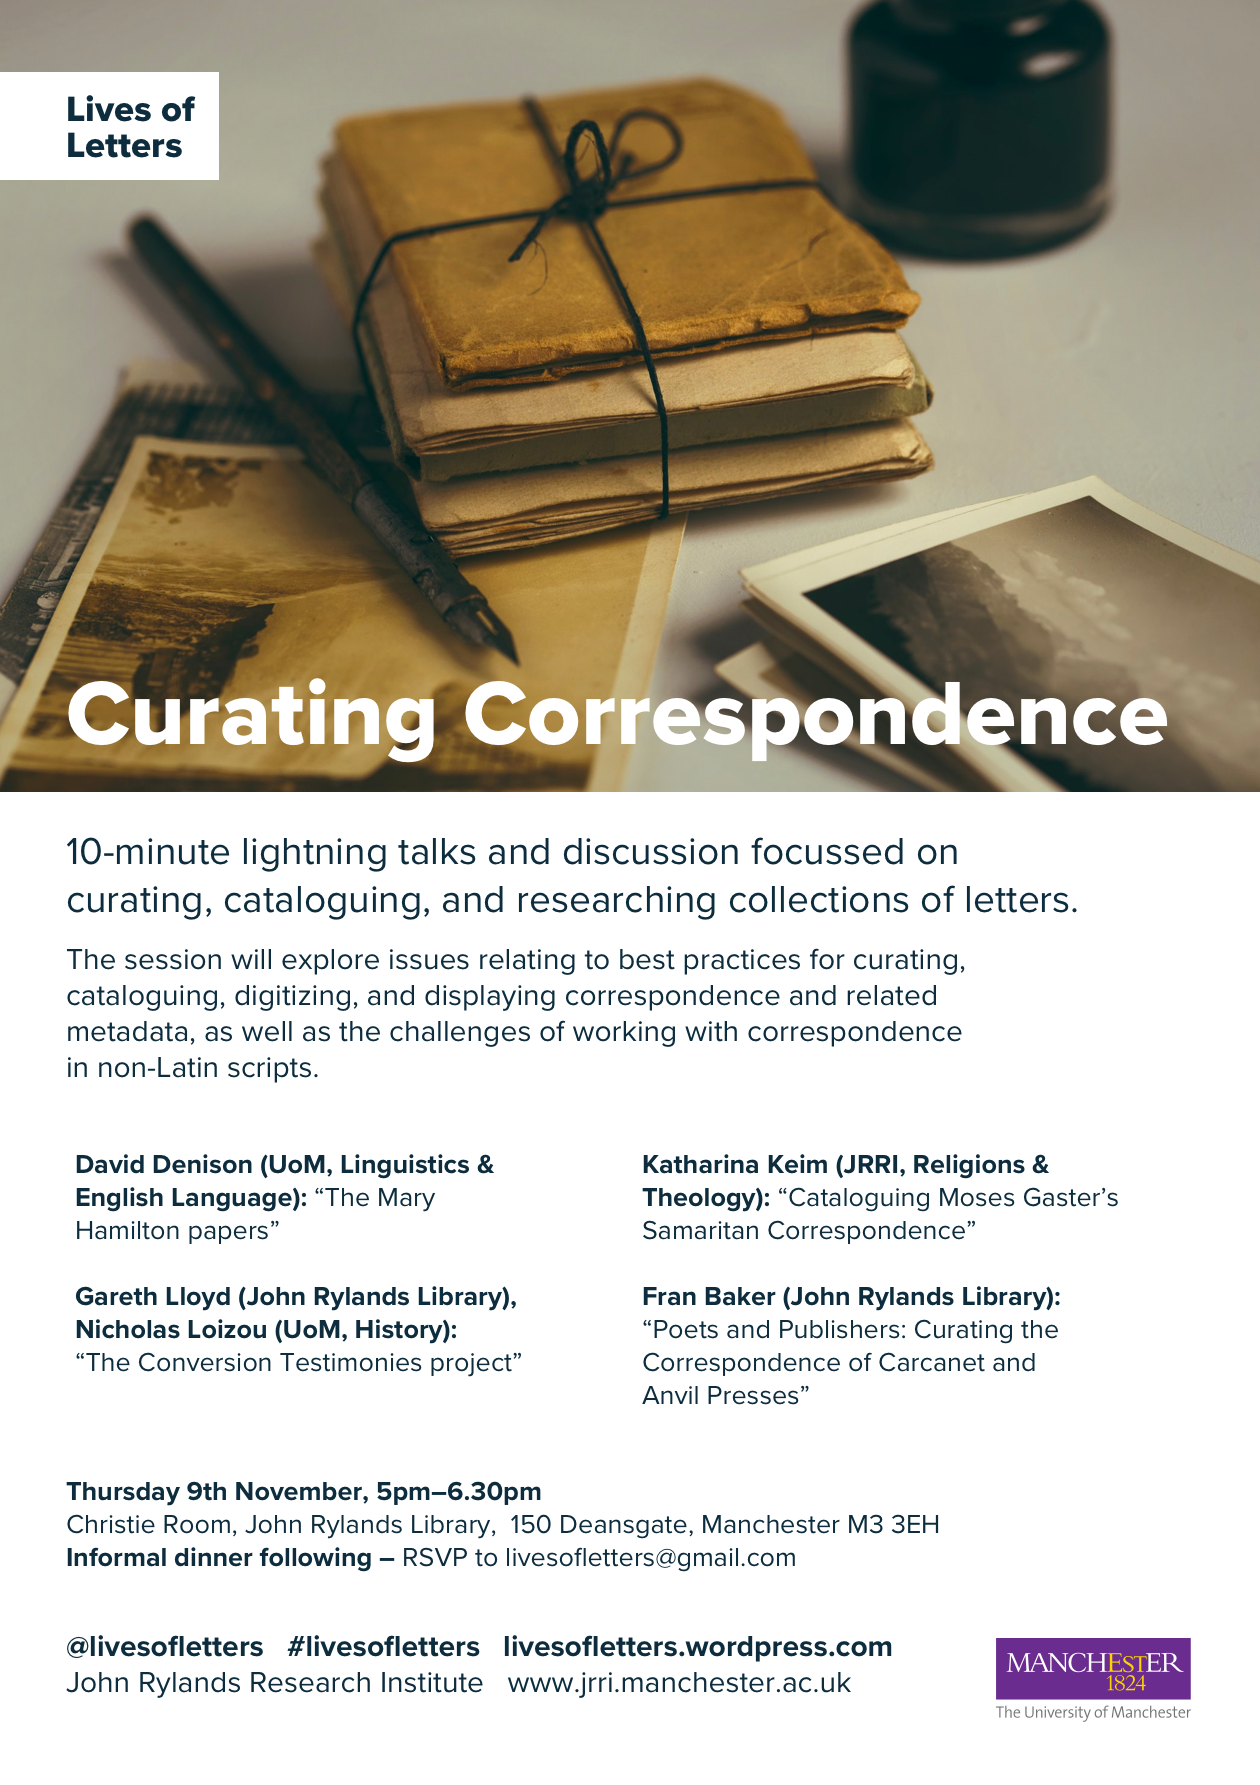 Lives of Letters Curating Correspondence 9 Nov 2017 web